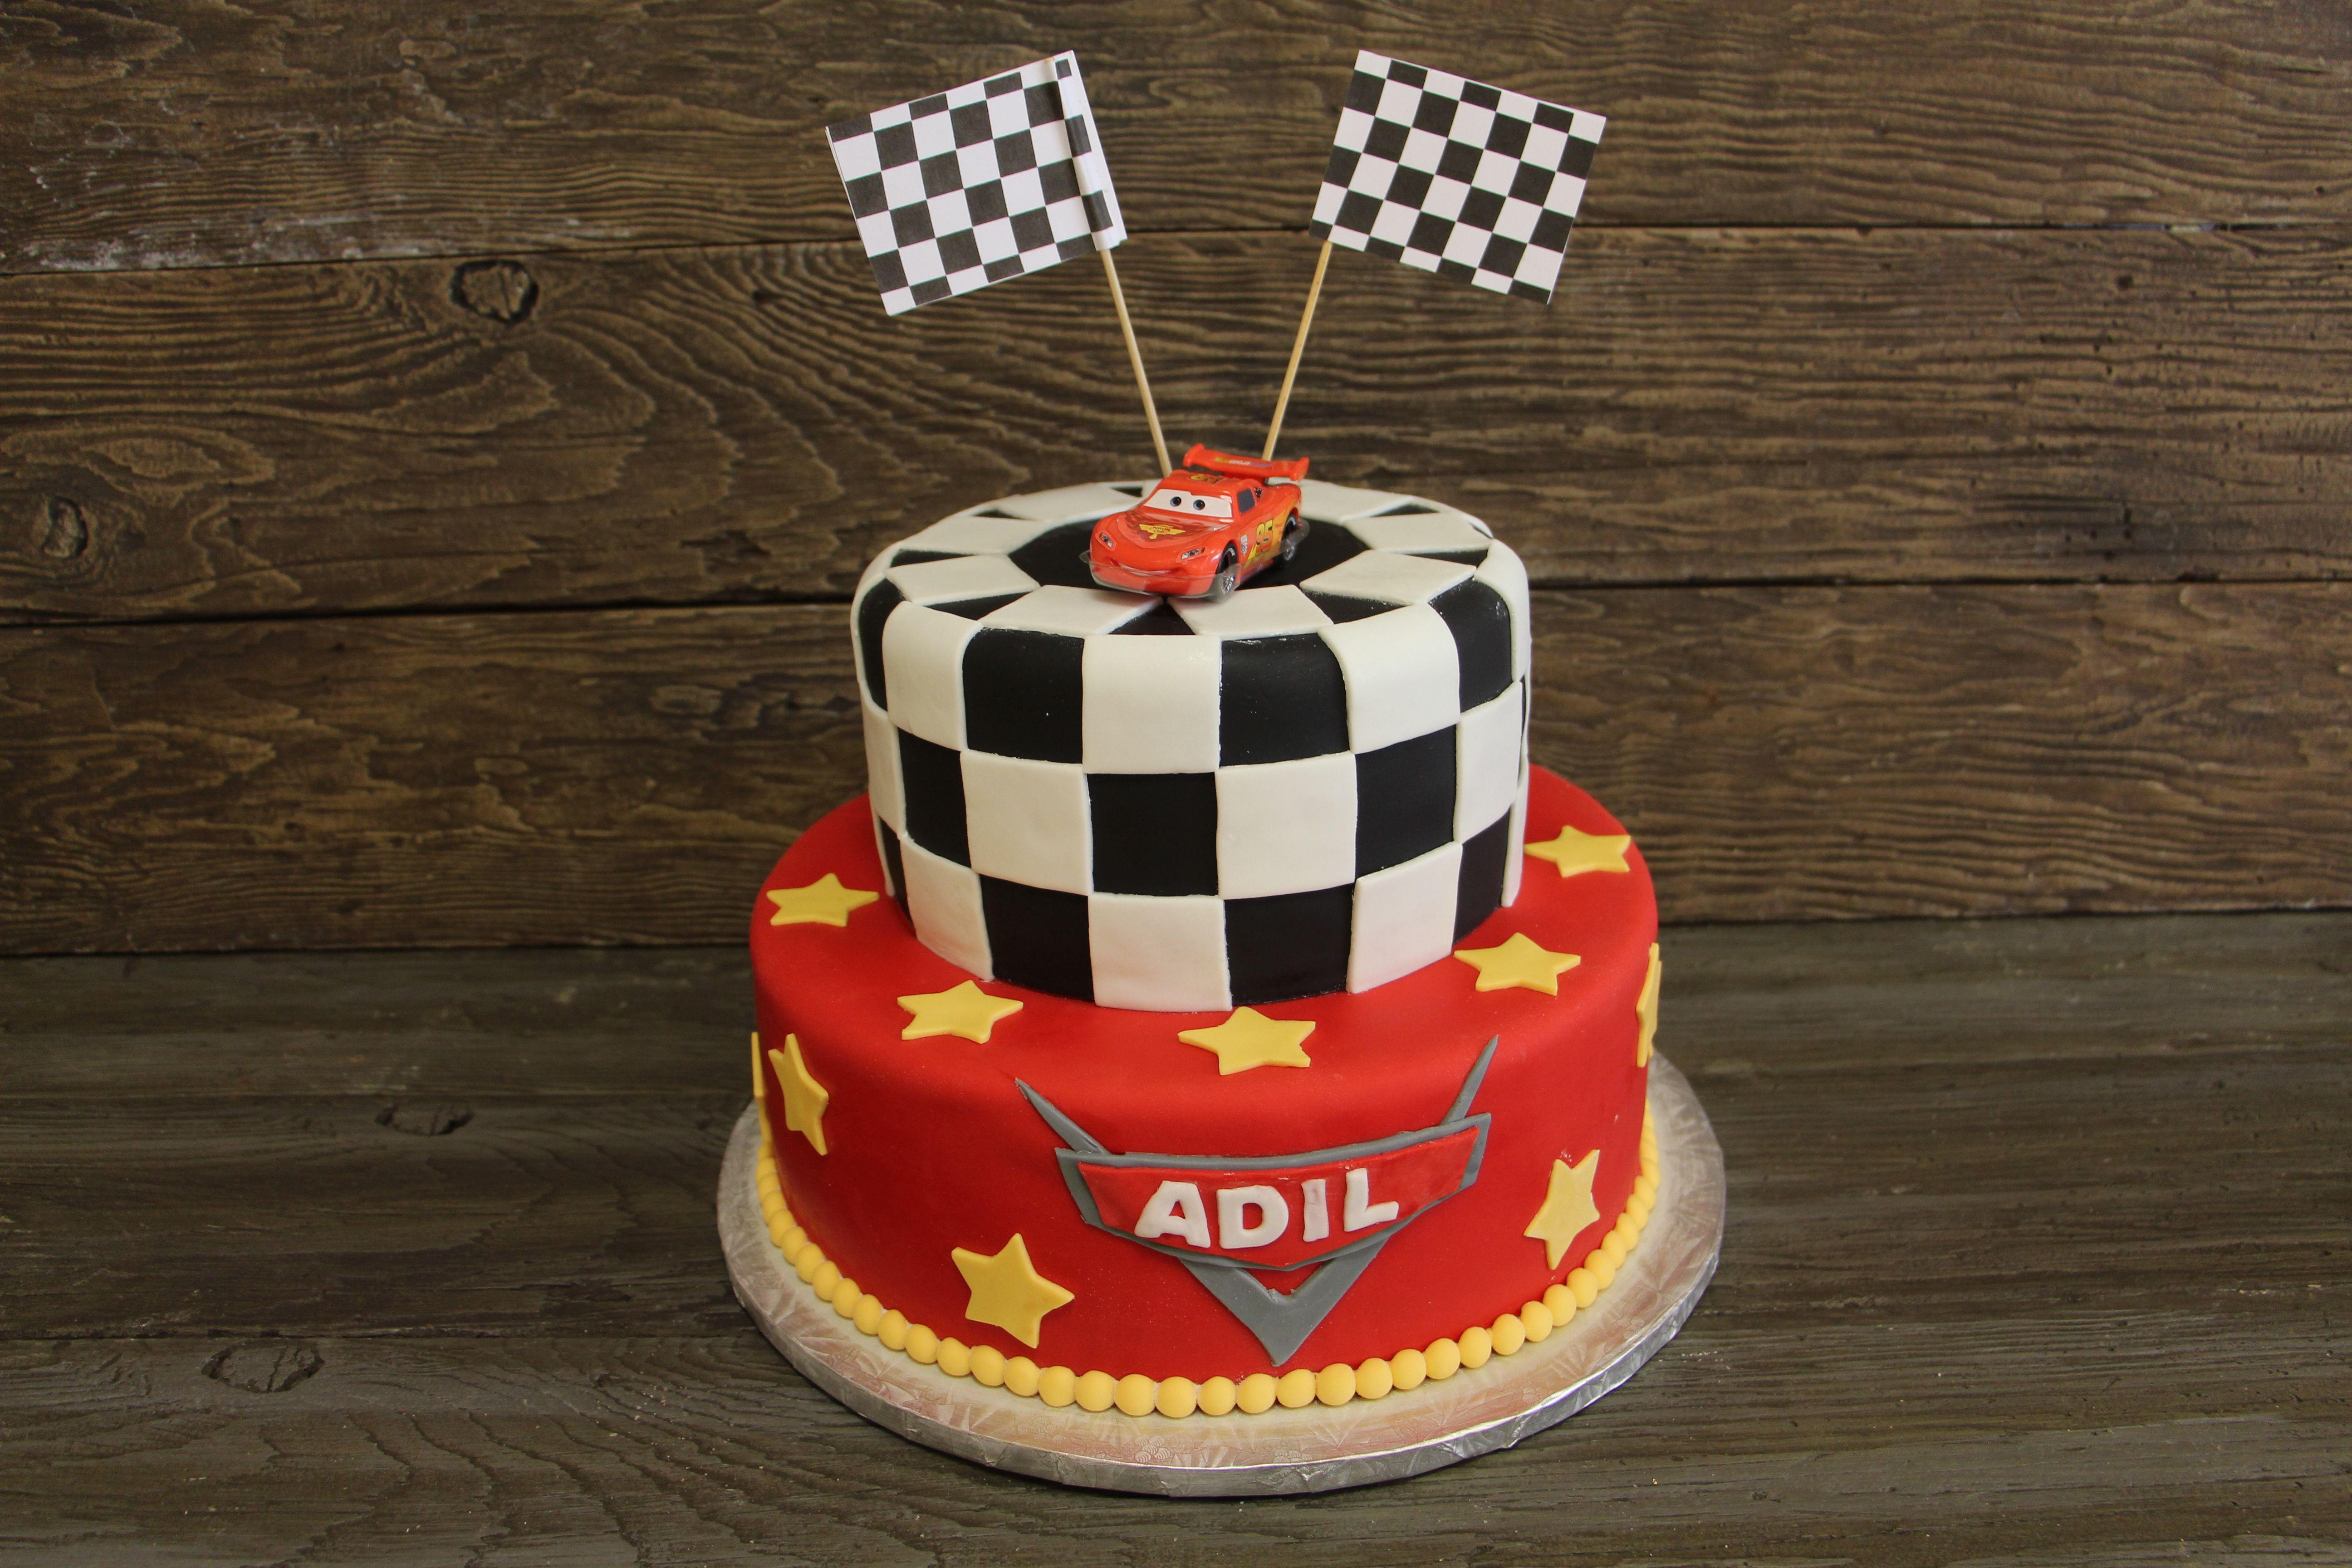 Cars birthday cake 559 by select bakery toronto on 405